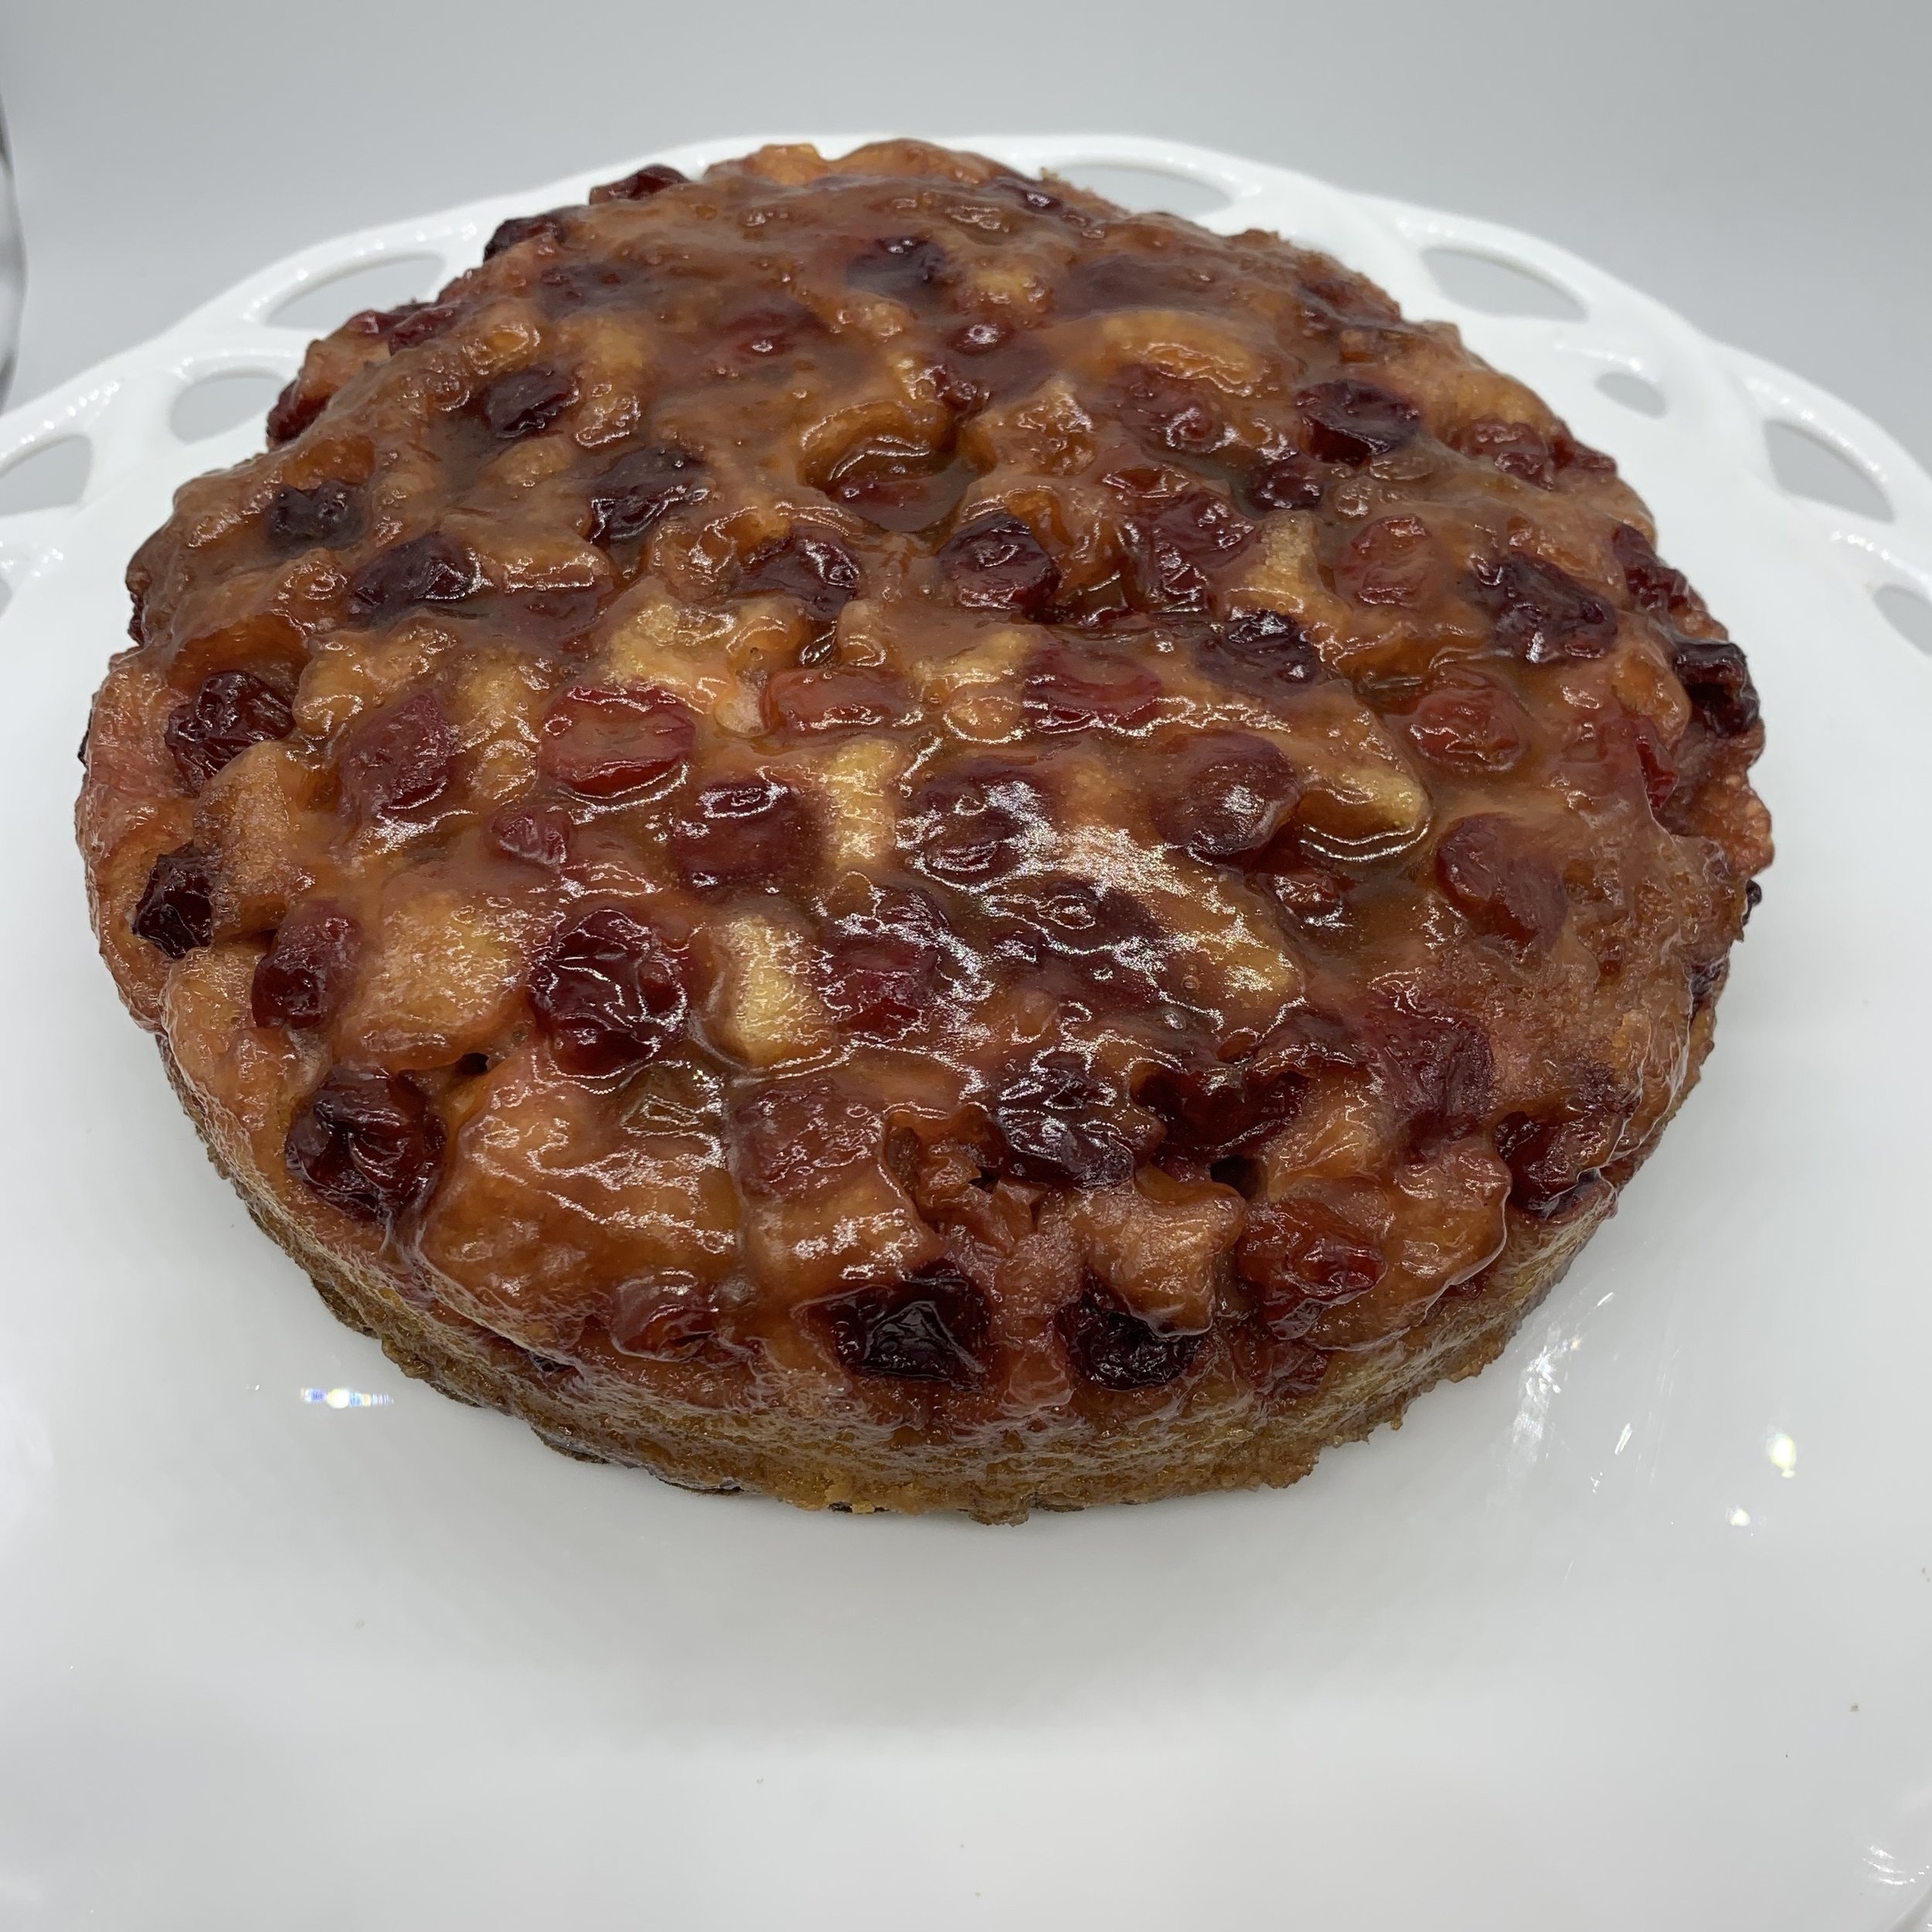 Upside down cake - We offer rotating seasonal flavors throughout the year